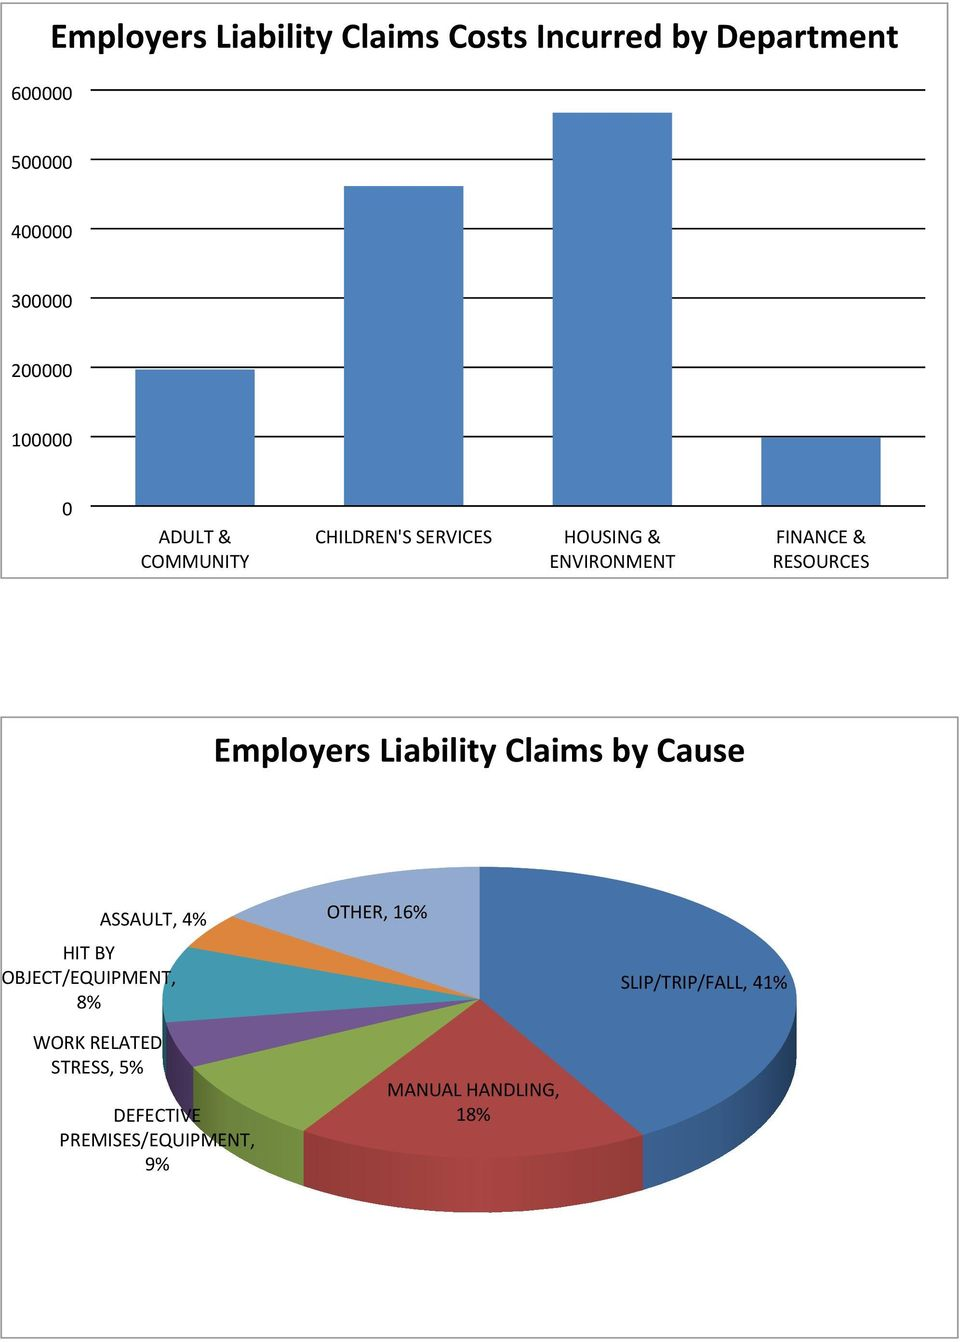 Employers Liability Claims by Cause HIT BY OBJECT/EQUIPMENT, 8% ASSAULT, 4% OTHER, 16%